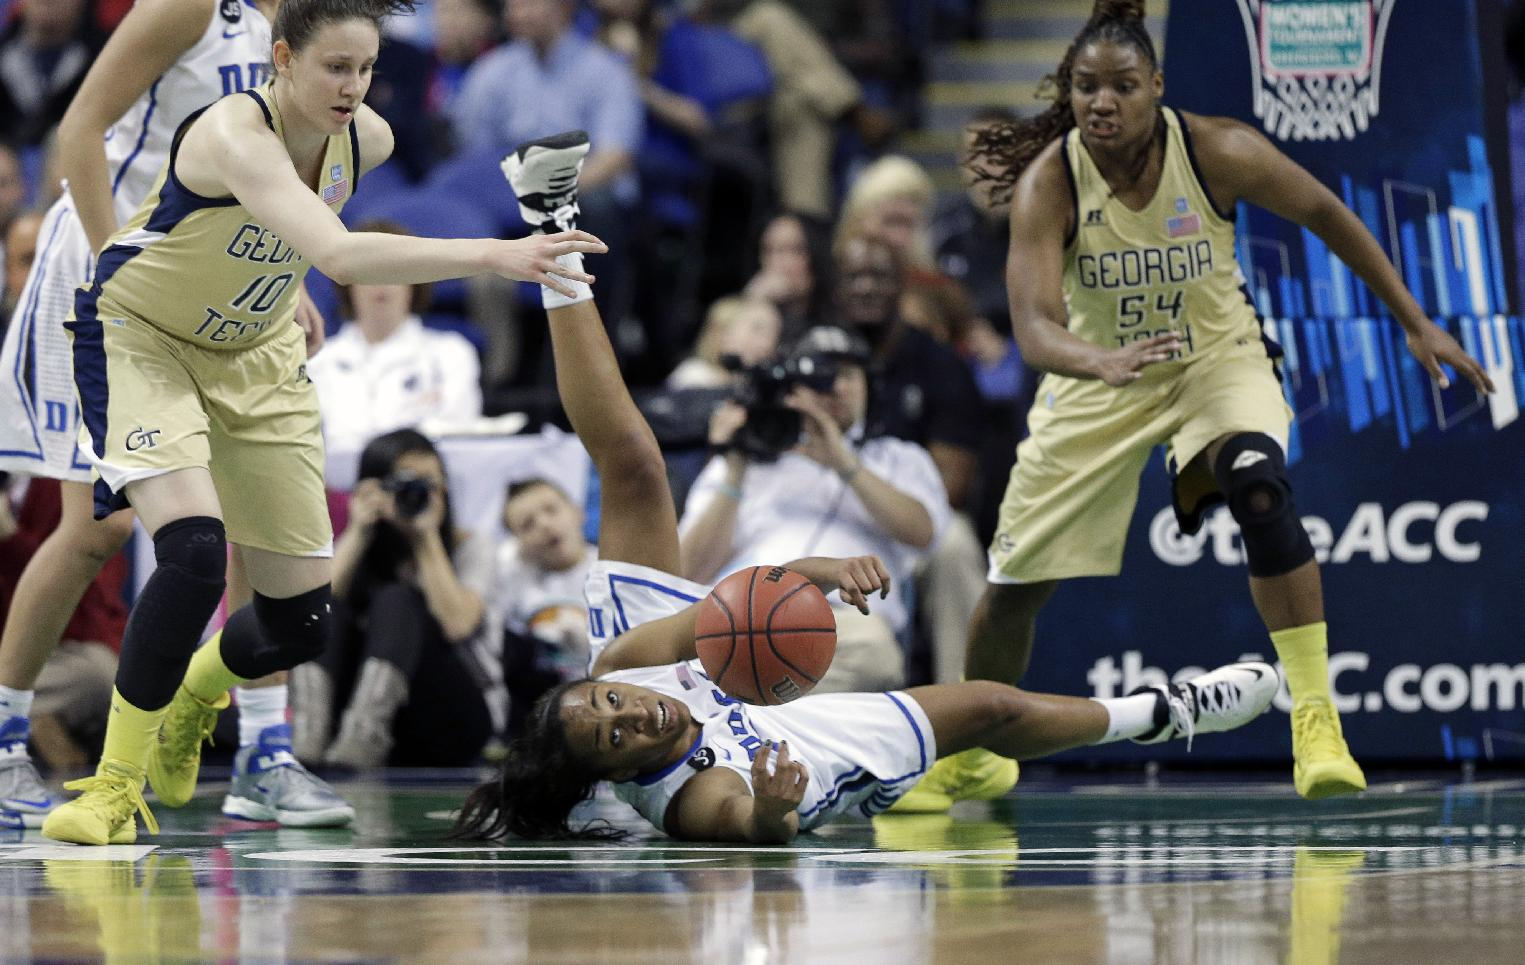 Duke's Oderah Chidom, center, passes the ball as Georgia Tech's Katarina Vuckovic, left, and Roddreka Rogers, right, defend during the first half of an NCAA college basketball game at the Atlantic Coast Conference tournament in Greensboro, N.C., Friday, March 7, 2014